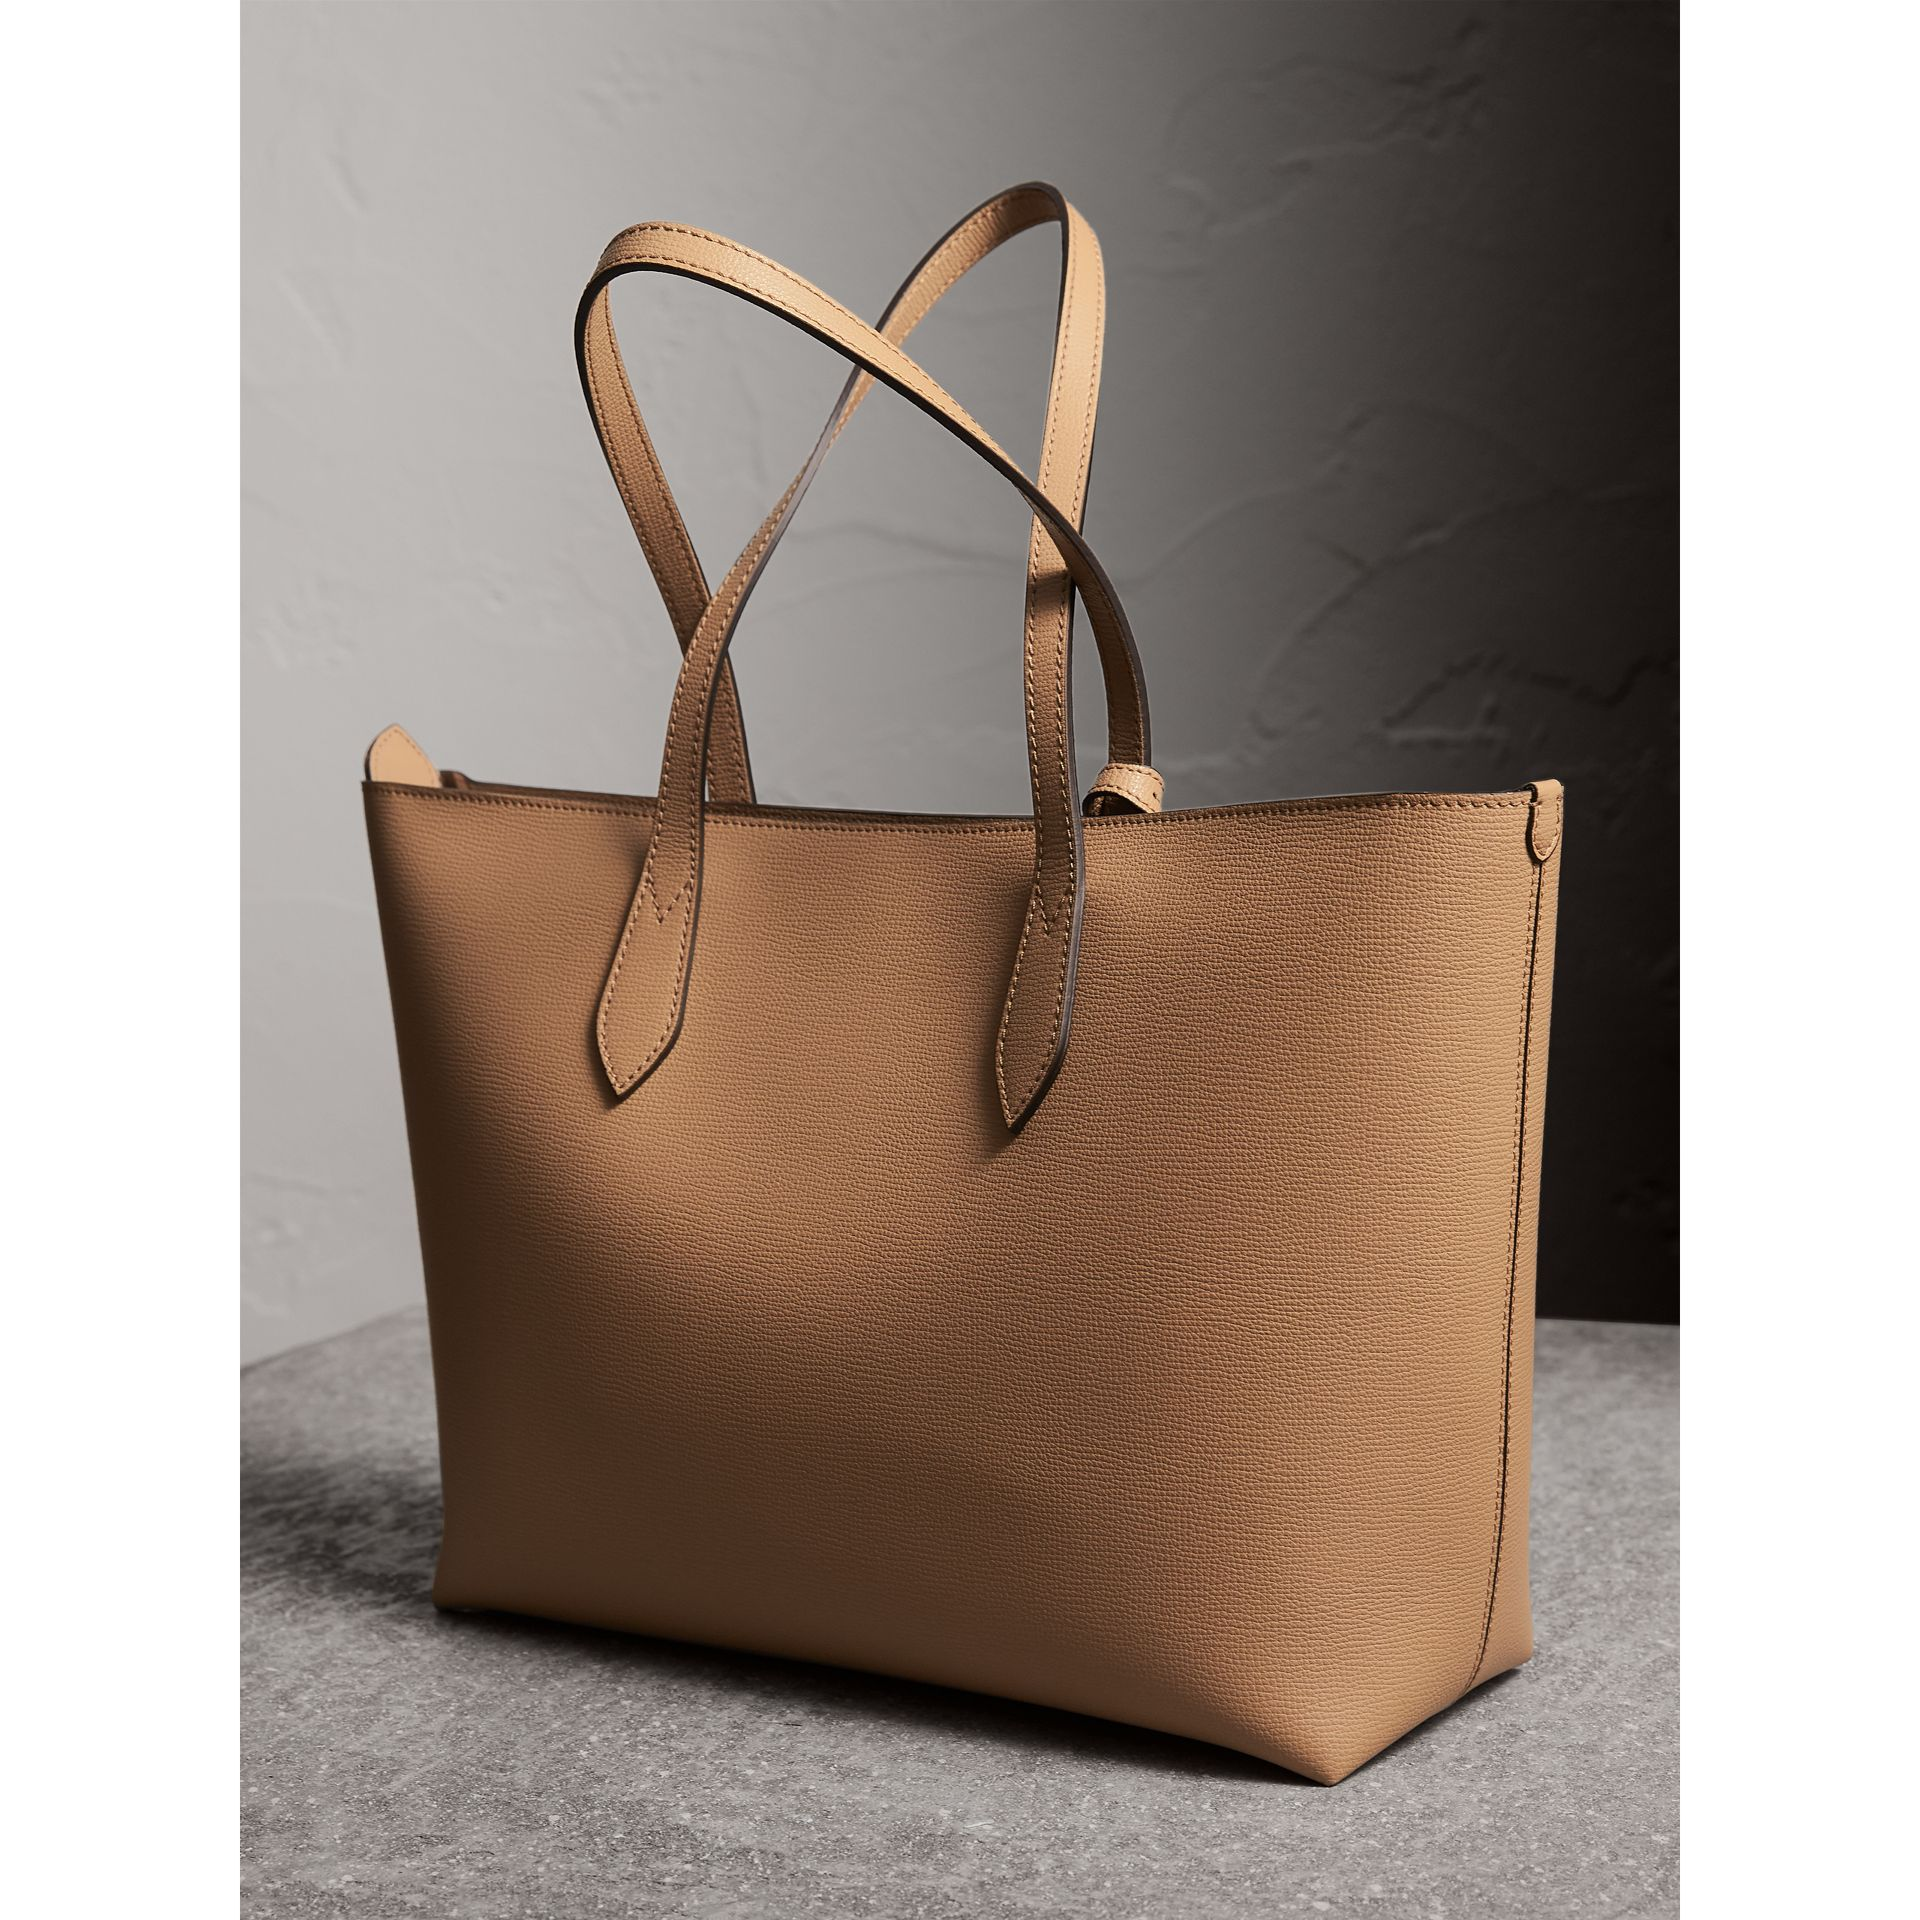 Medium Coated Leather Tote in Mid Camel - Women | Burberry - gallery image 4